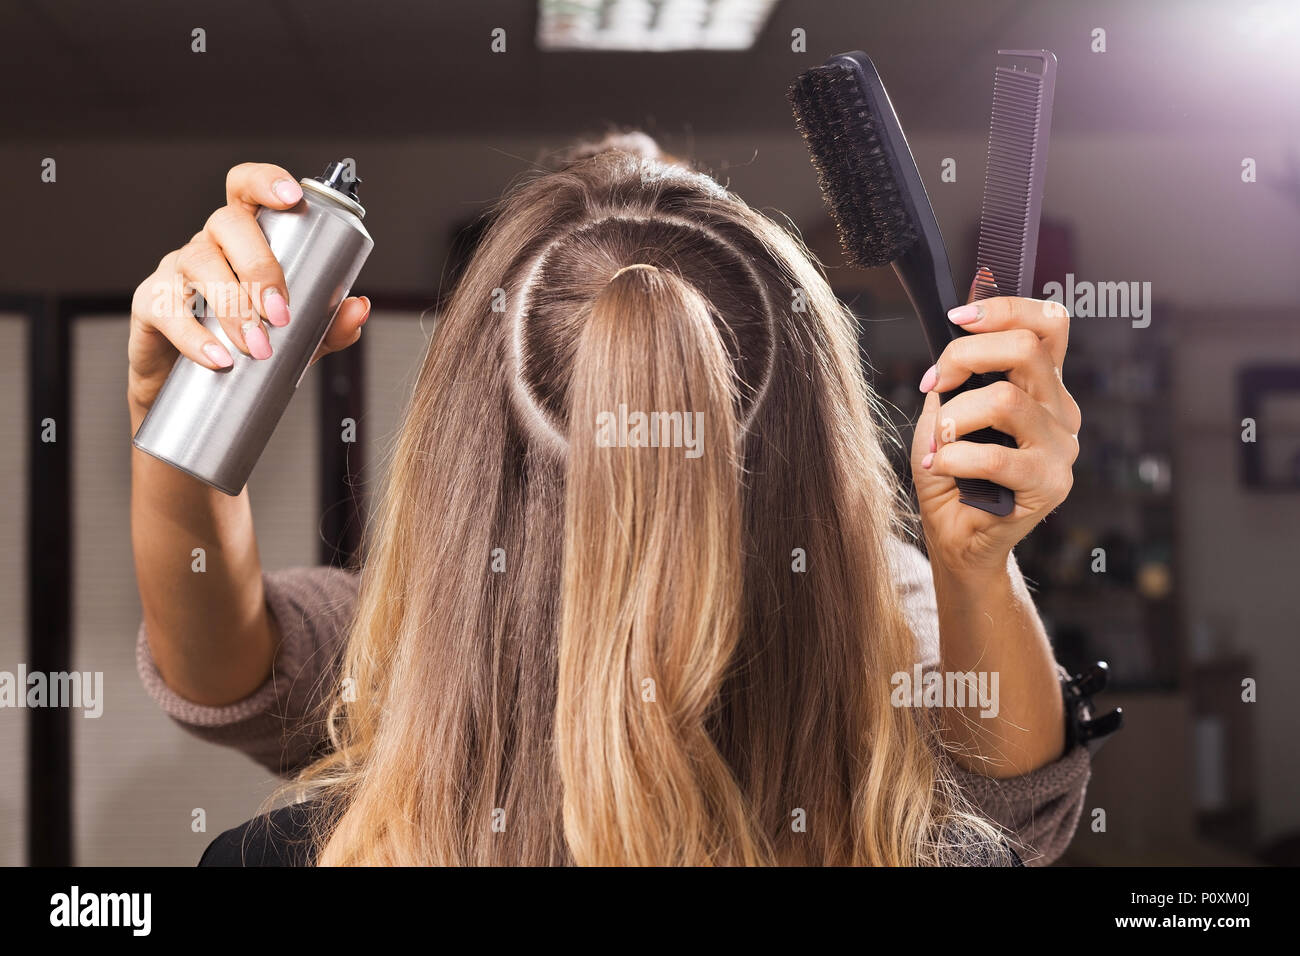 hairdresser fixing hairdo of a model with a hair spray - Stock Image